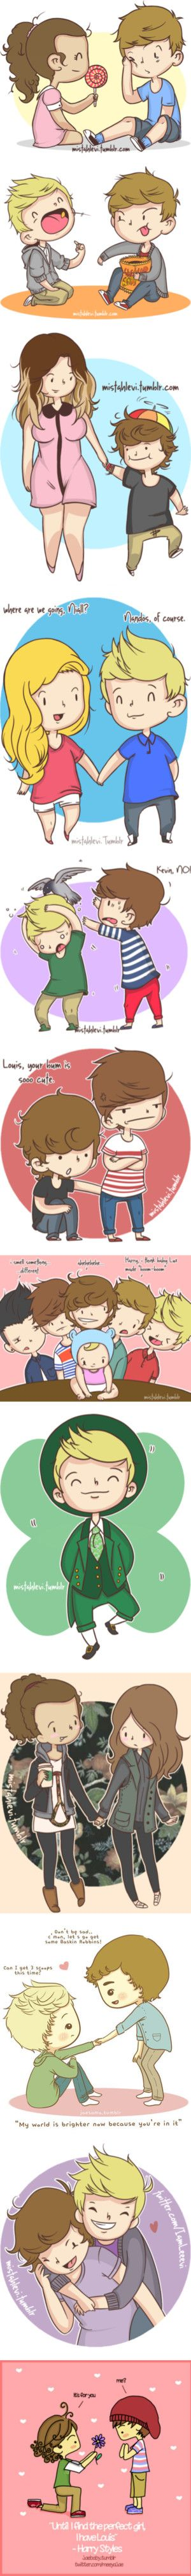 """""""One Direction Cartoons 3"""" by victoria-peerson ❤ liked on Polyvore"""